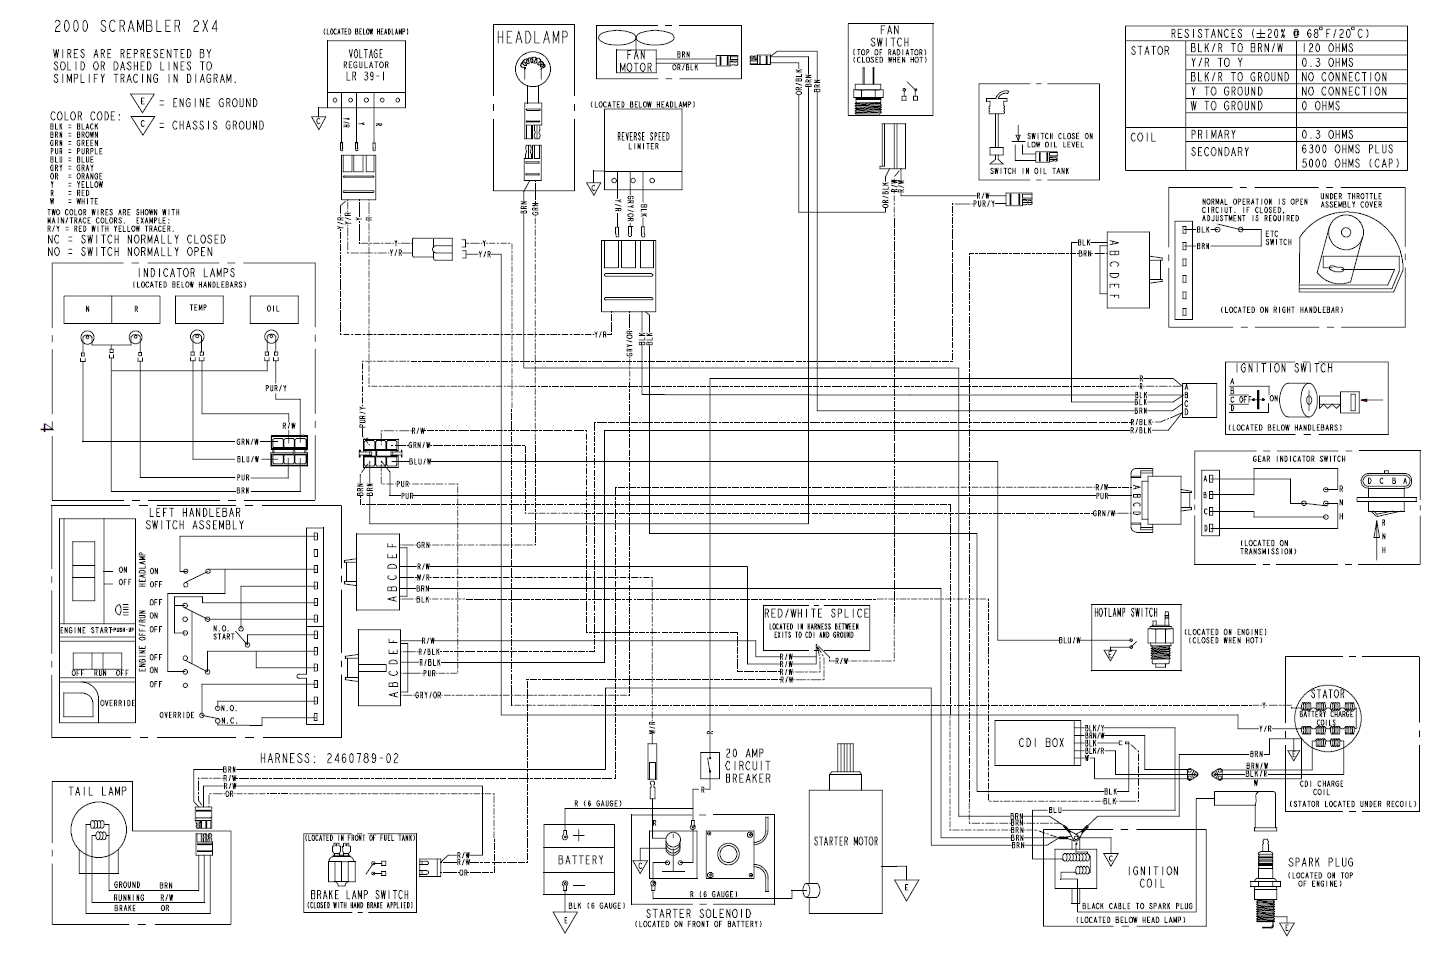 wiring diagram 2000 polaris scrambler 4x4 2c9645b polaris 340 edge 2008 wiring diagram wiring library  2c9645b polaris 340 edge 2008 wiring